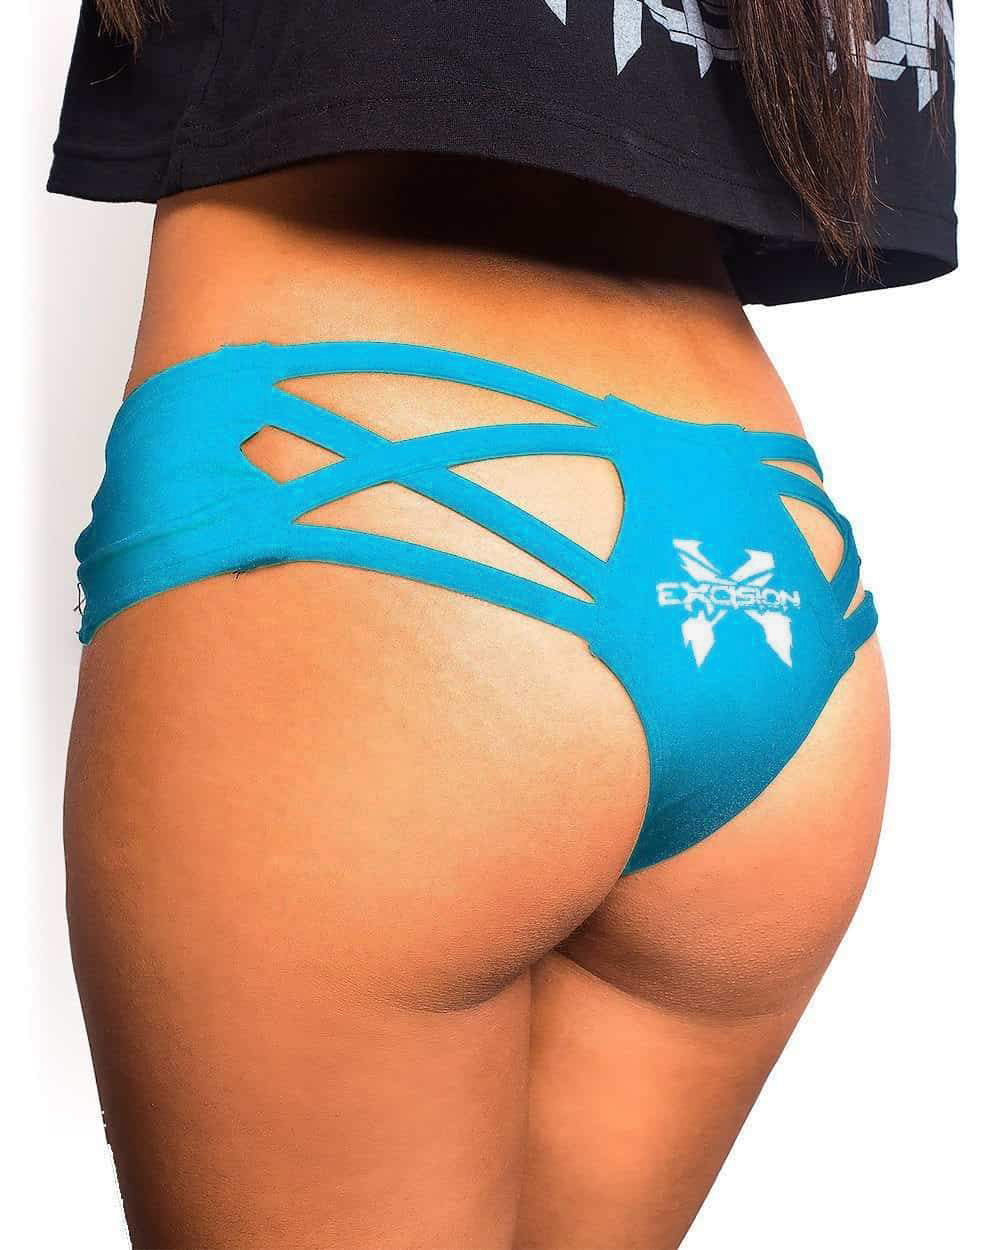 Excision X Cross Cut Out Booty Shorts - Turquoise